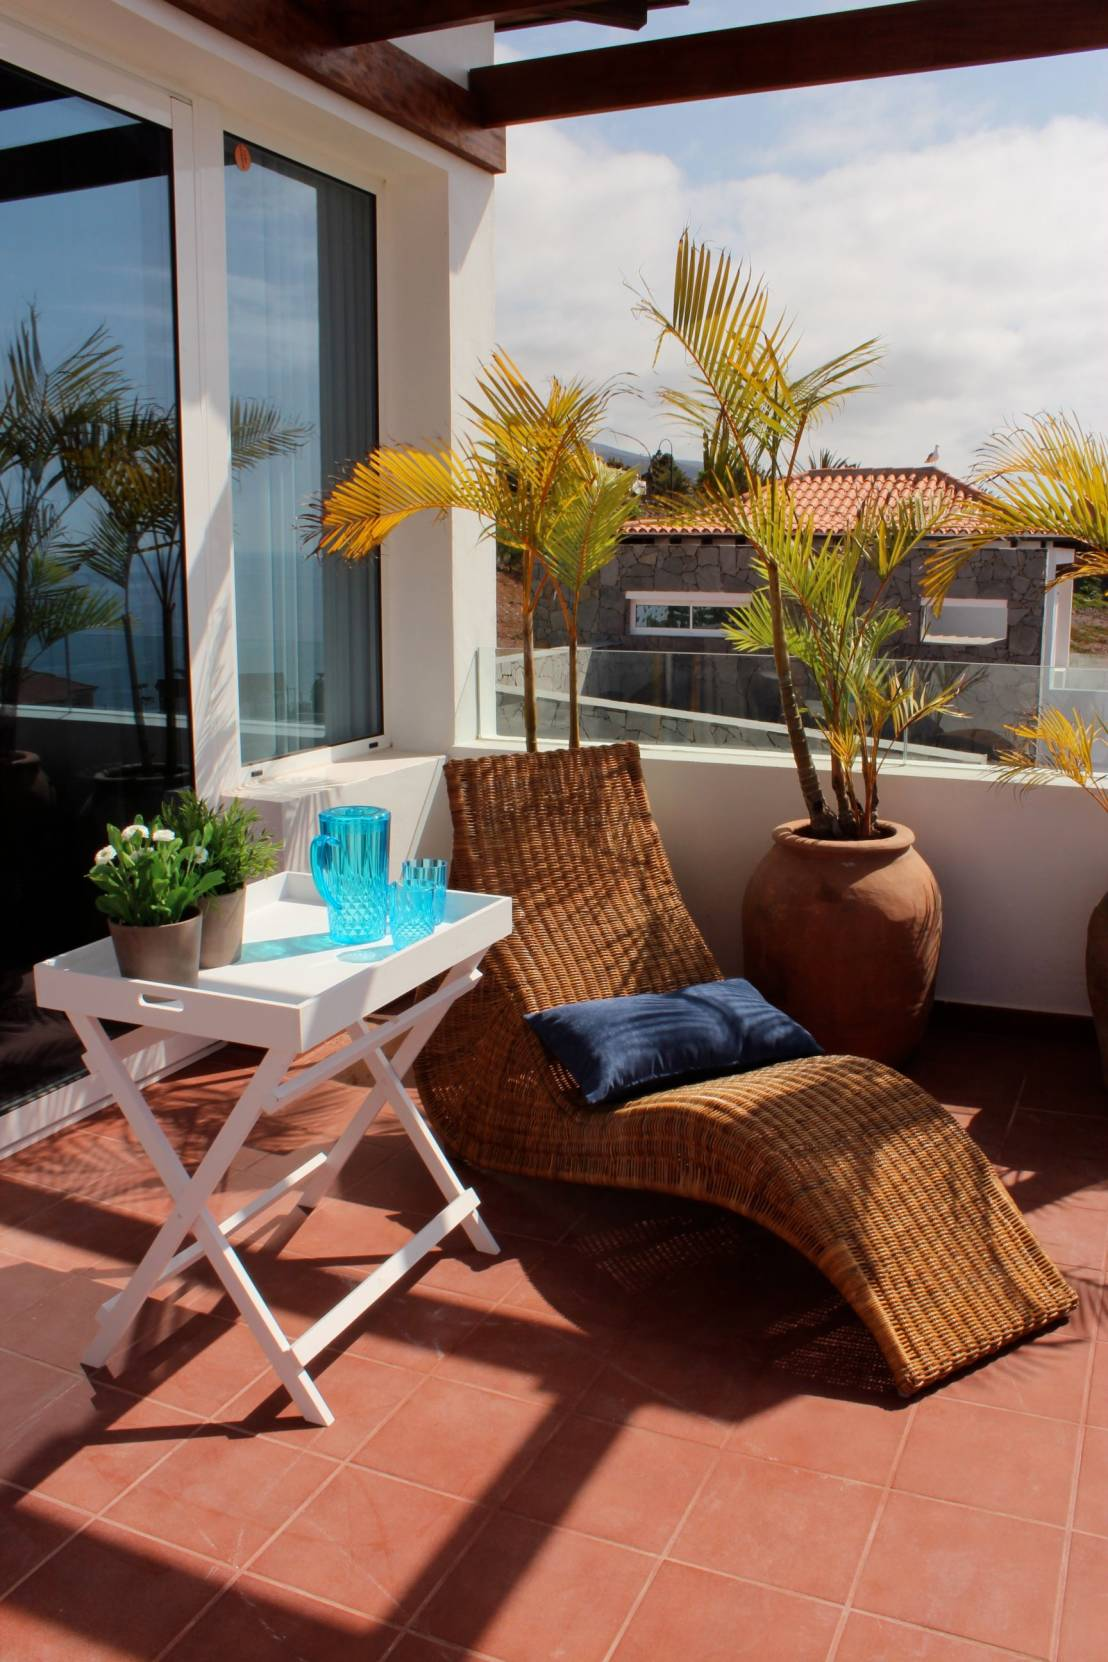 7 grandes ideas para balcones y terrazas peque as for Ideas decoracion terrazas exteriores